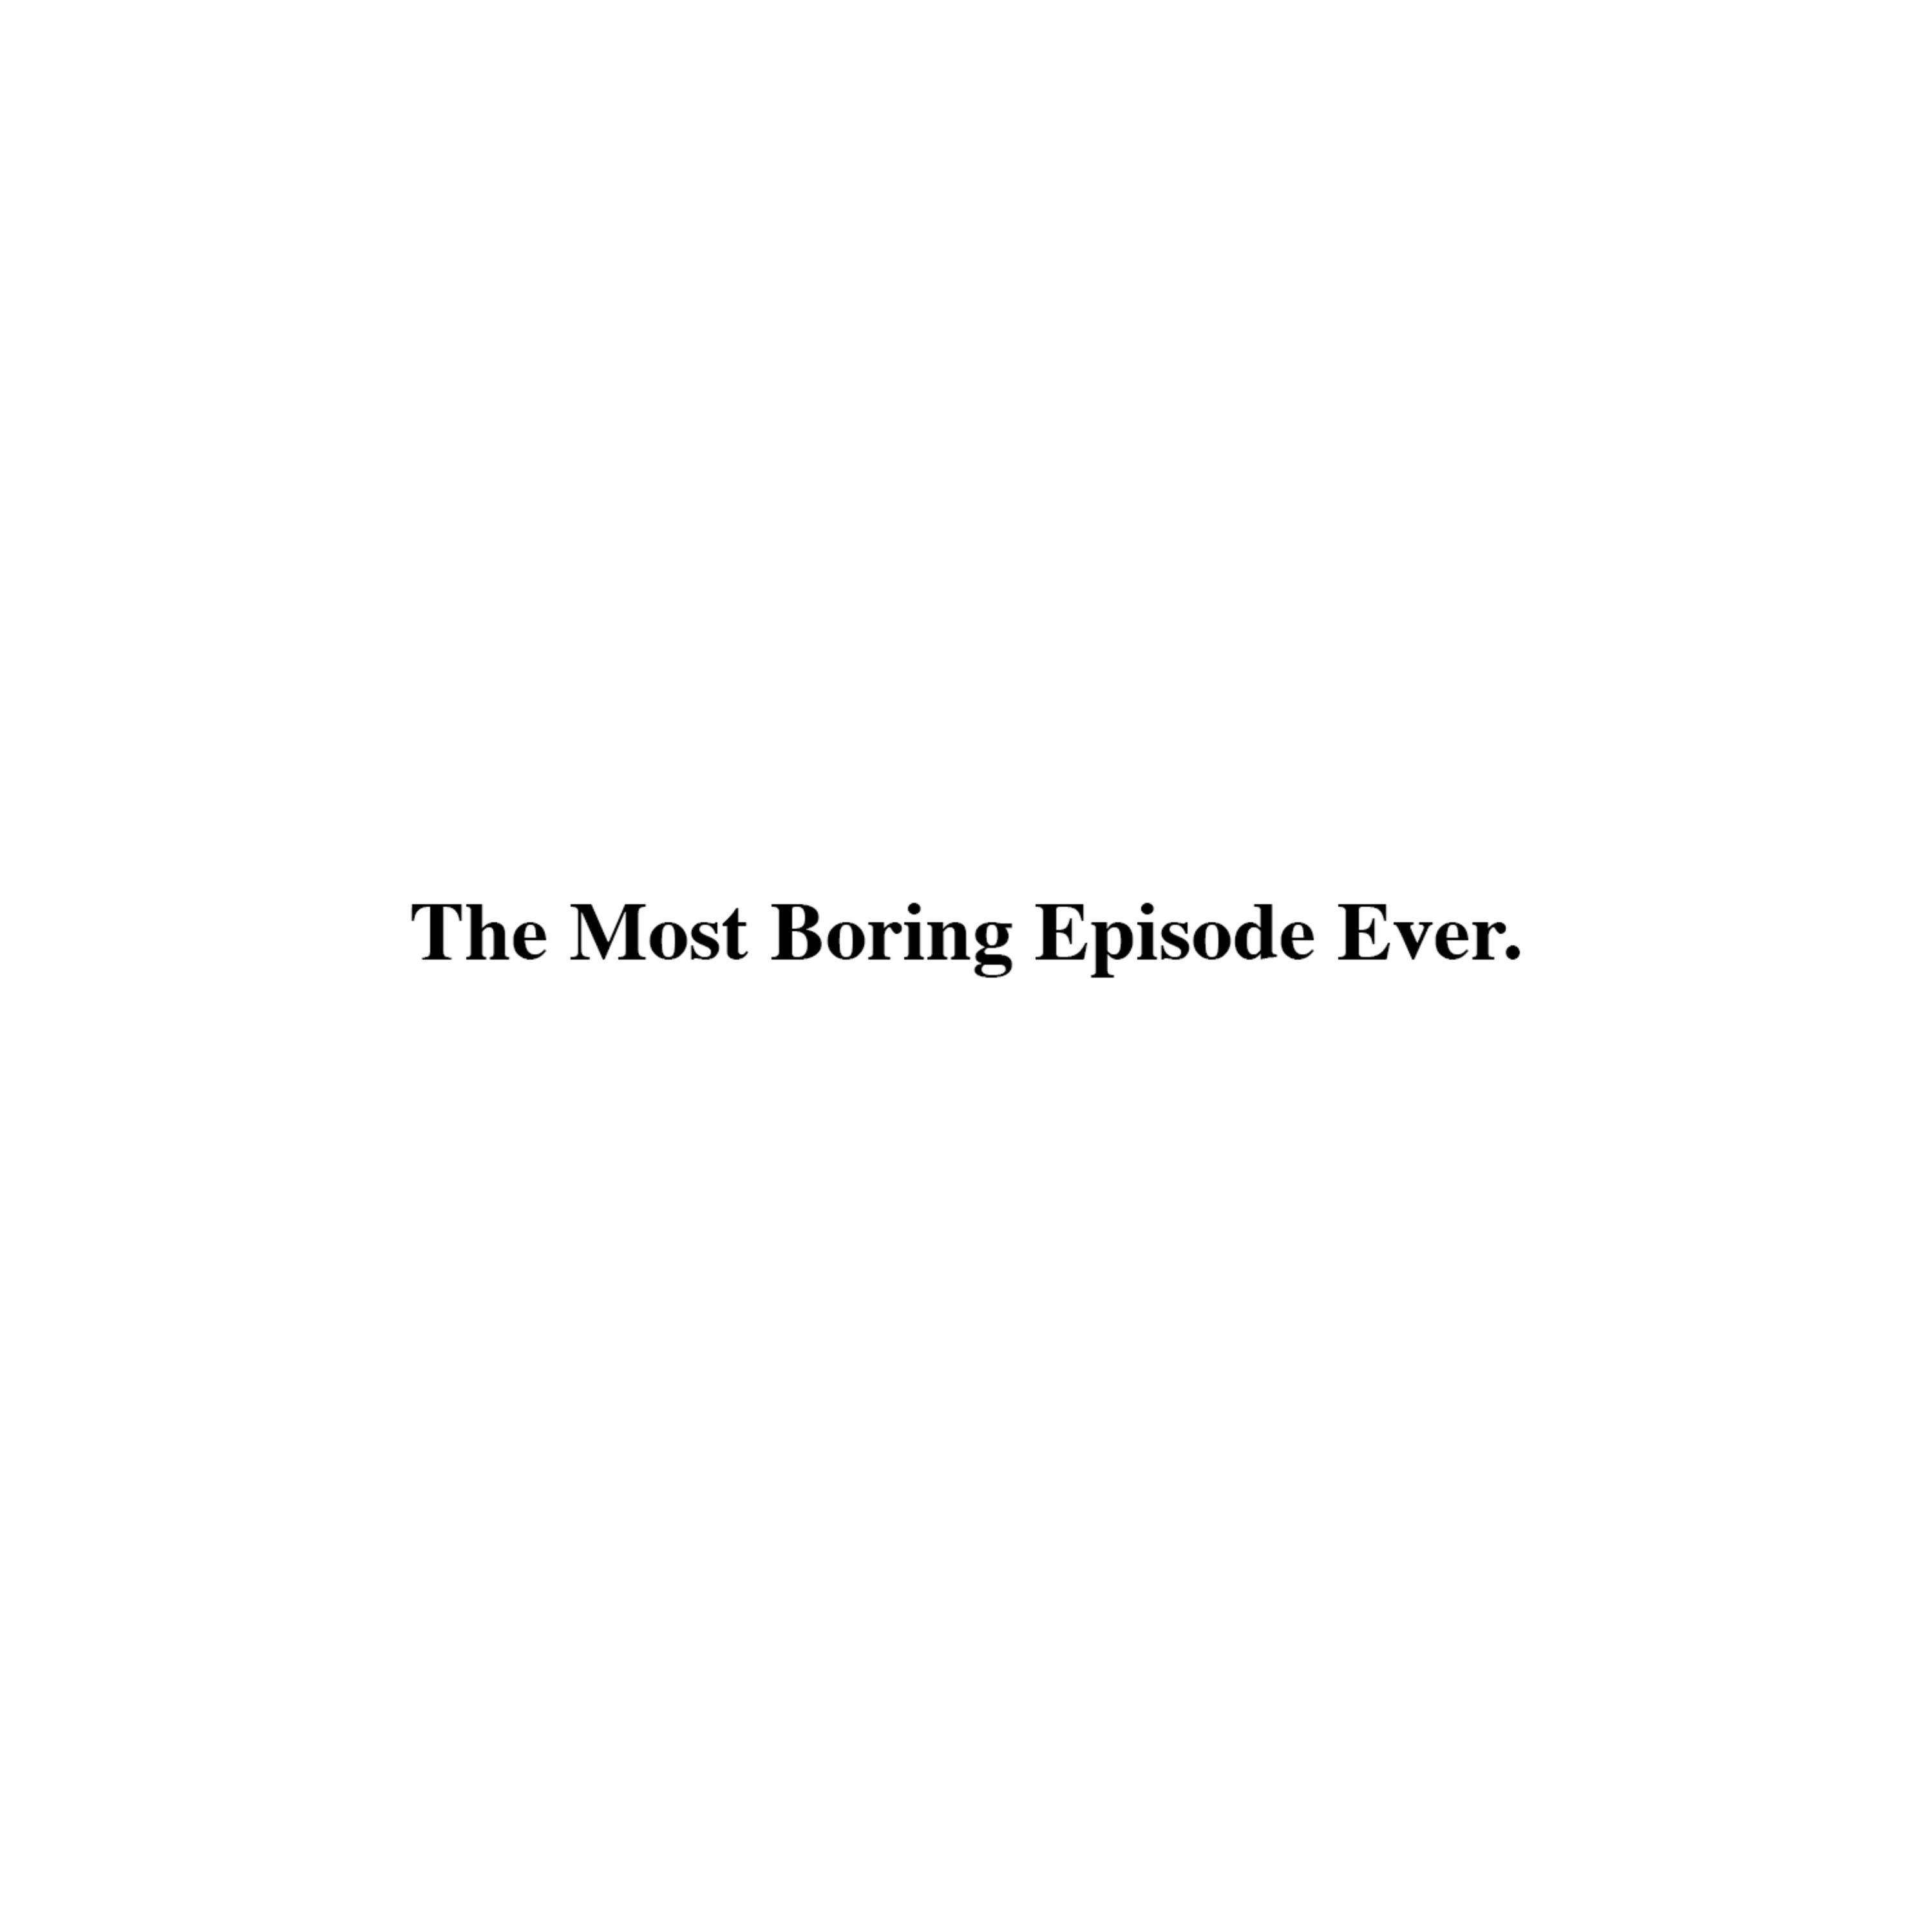 36: The Most Boring Episode Ever.